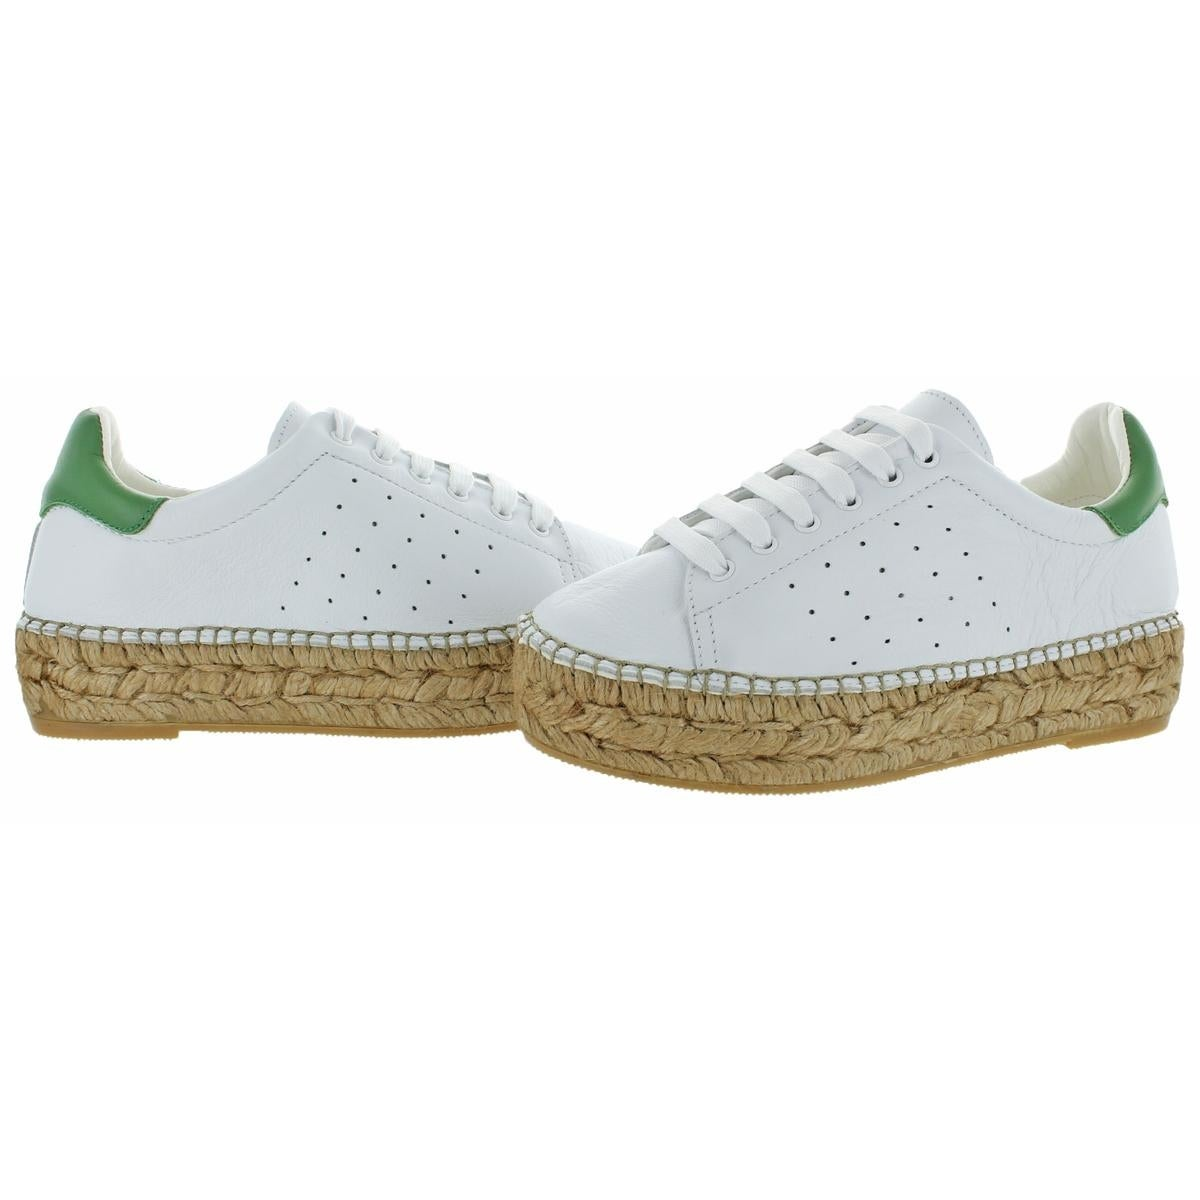 ec5786642b9 Shop Vince Camuto Womens Patty2 Fashion Sneakers Perforated Espadrille -  Free Shipping On Orders Over  45 - Overstock - 21027621